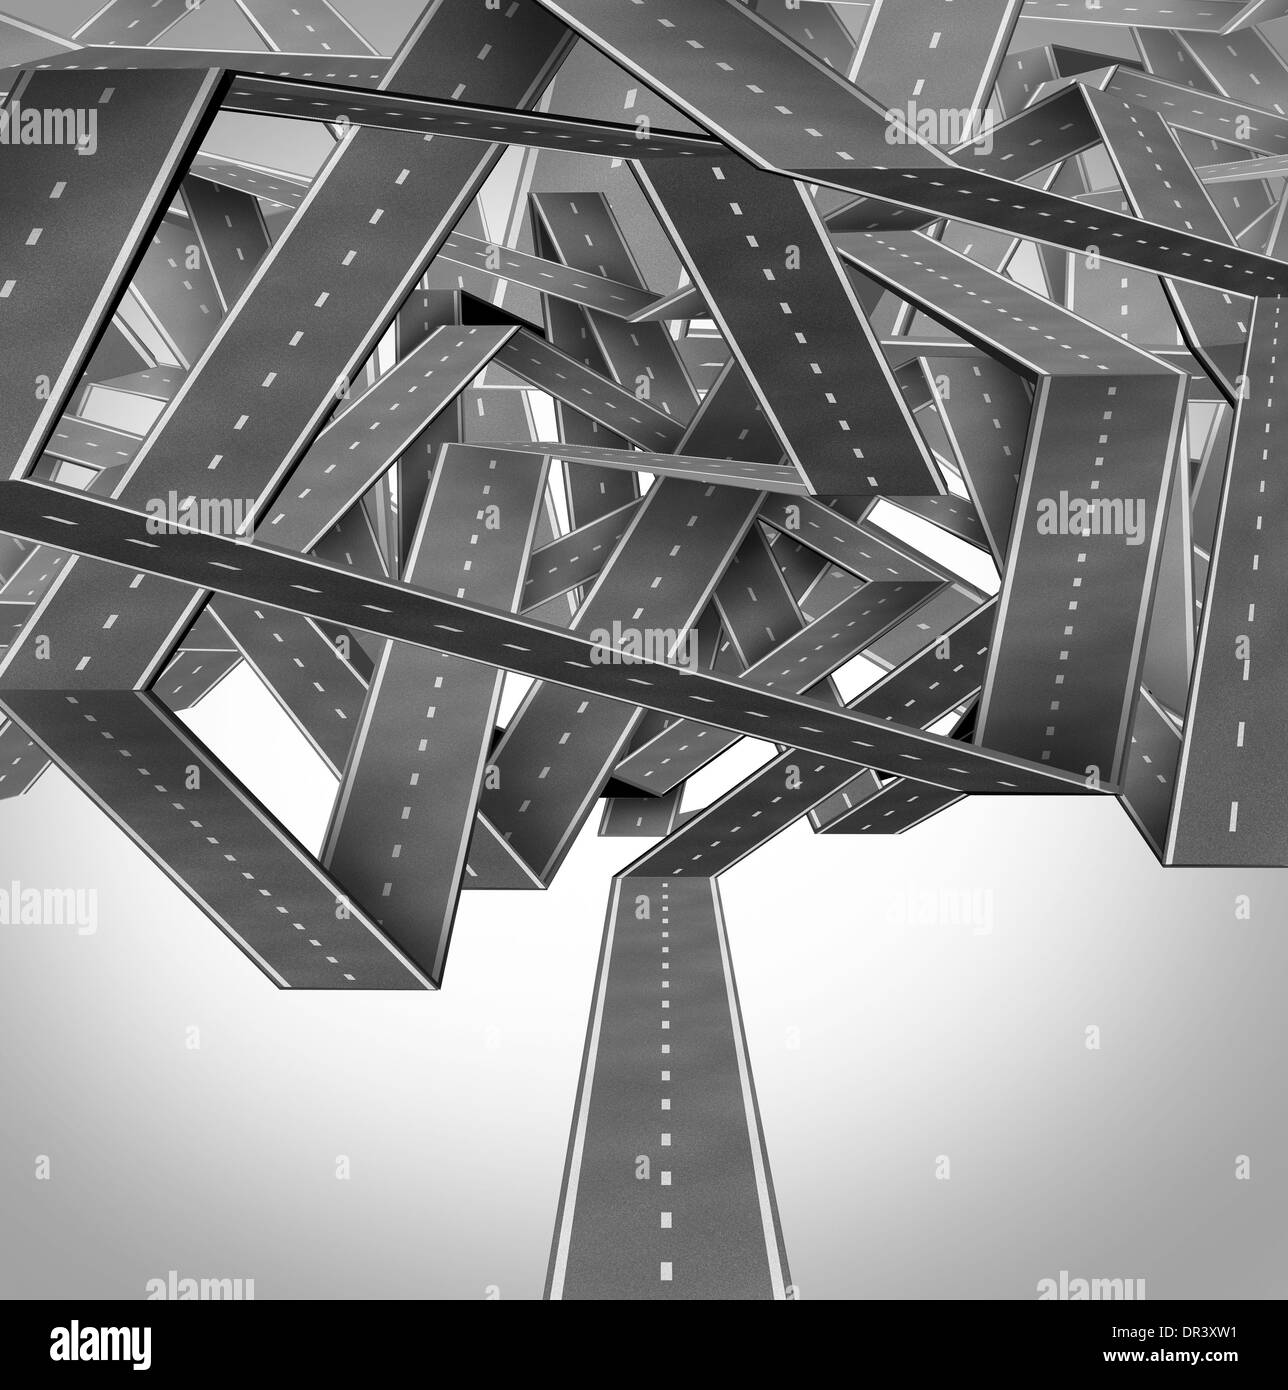 Business quagmire and entanglement concept with a group of three dimensional roads or highways tangled in a confused traffic crossroads jam as a metaphor for strategic difficulty. - Stock Image